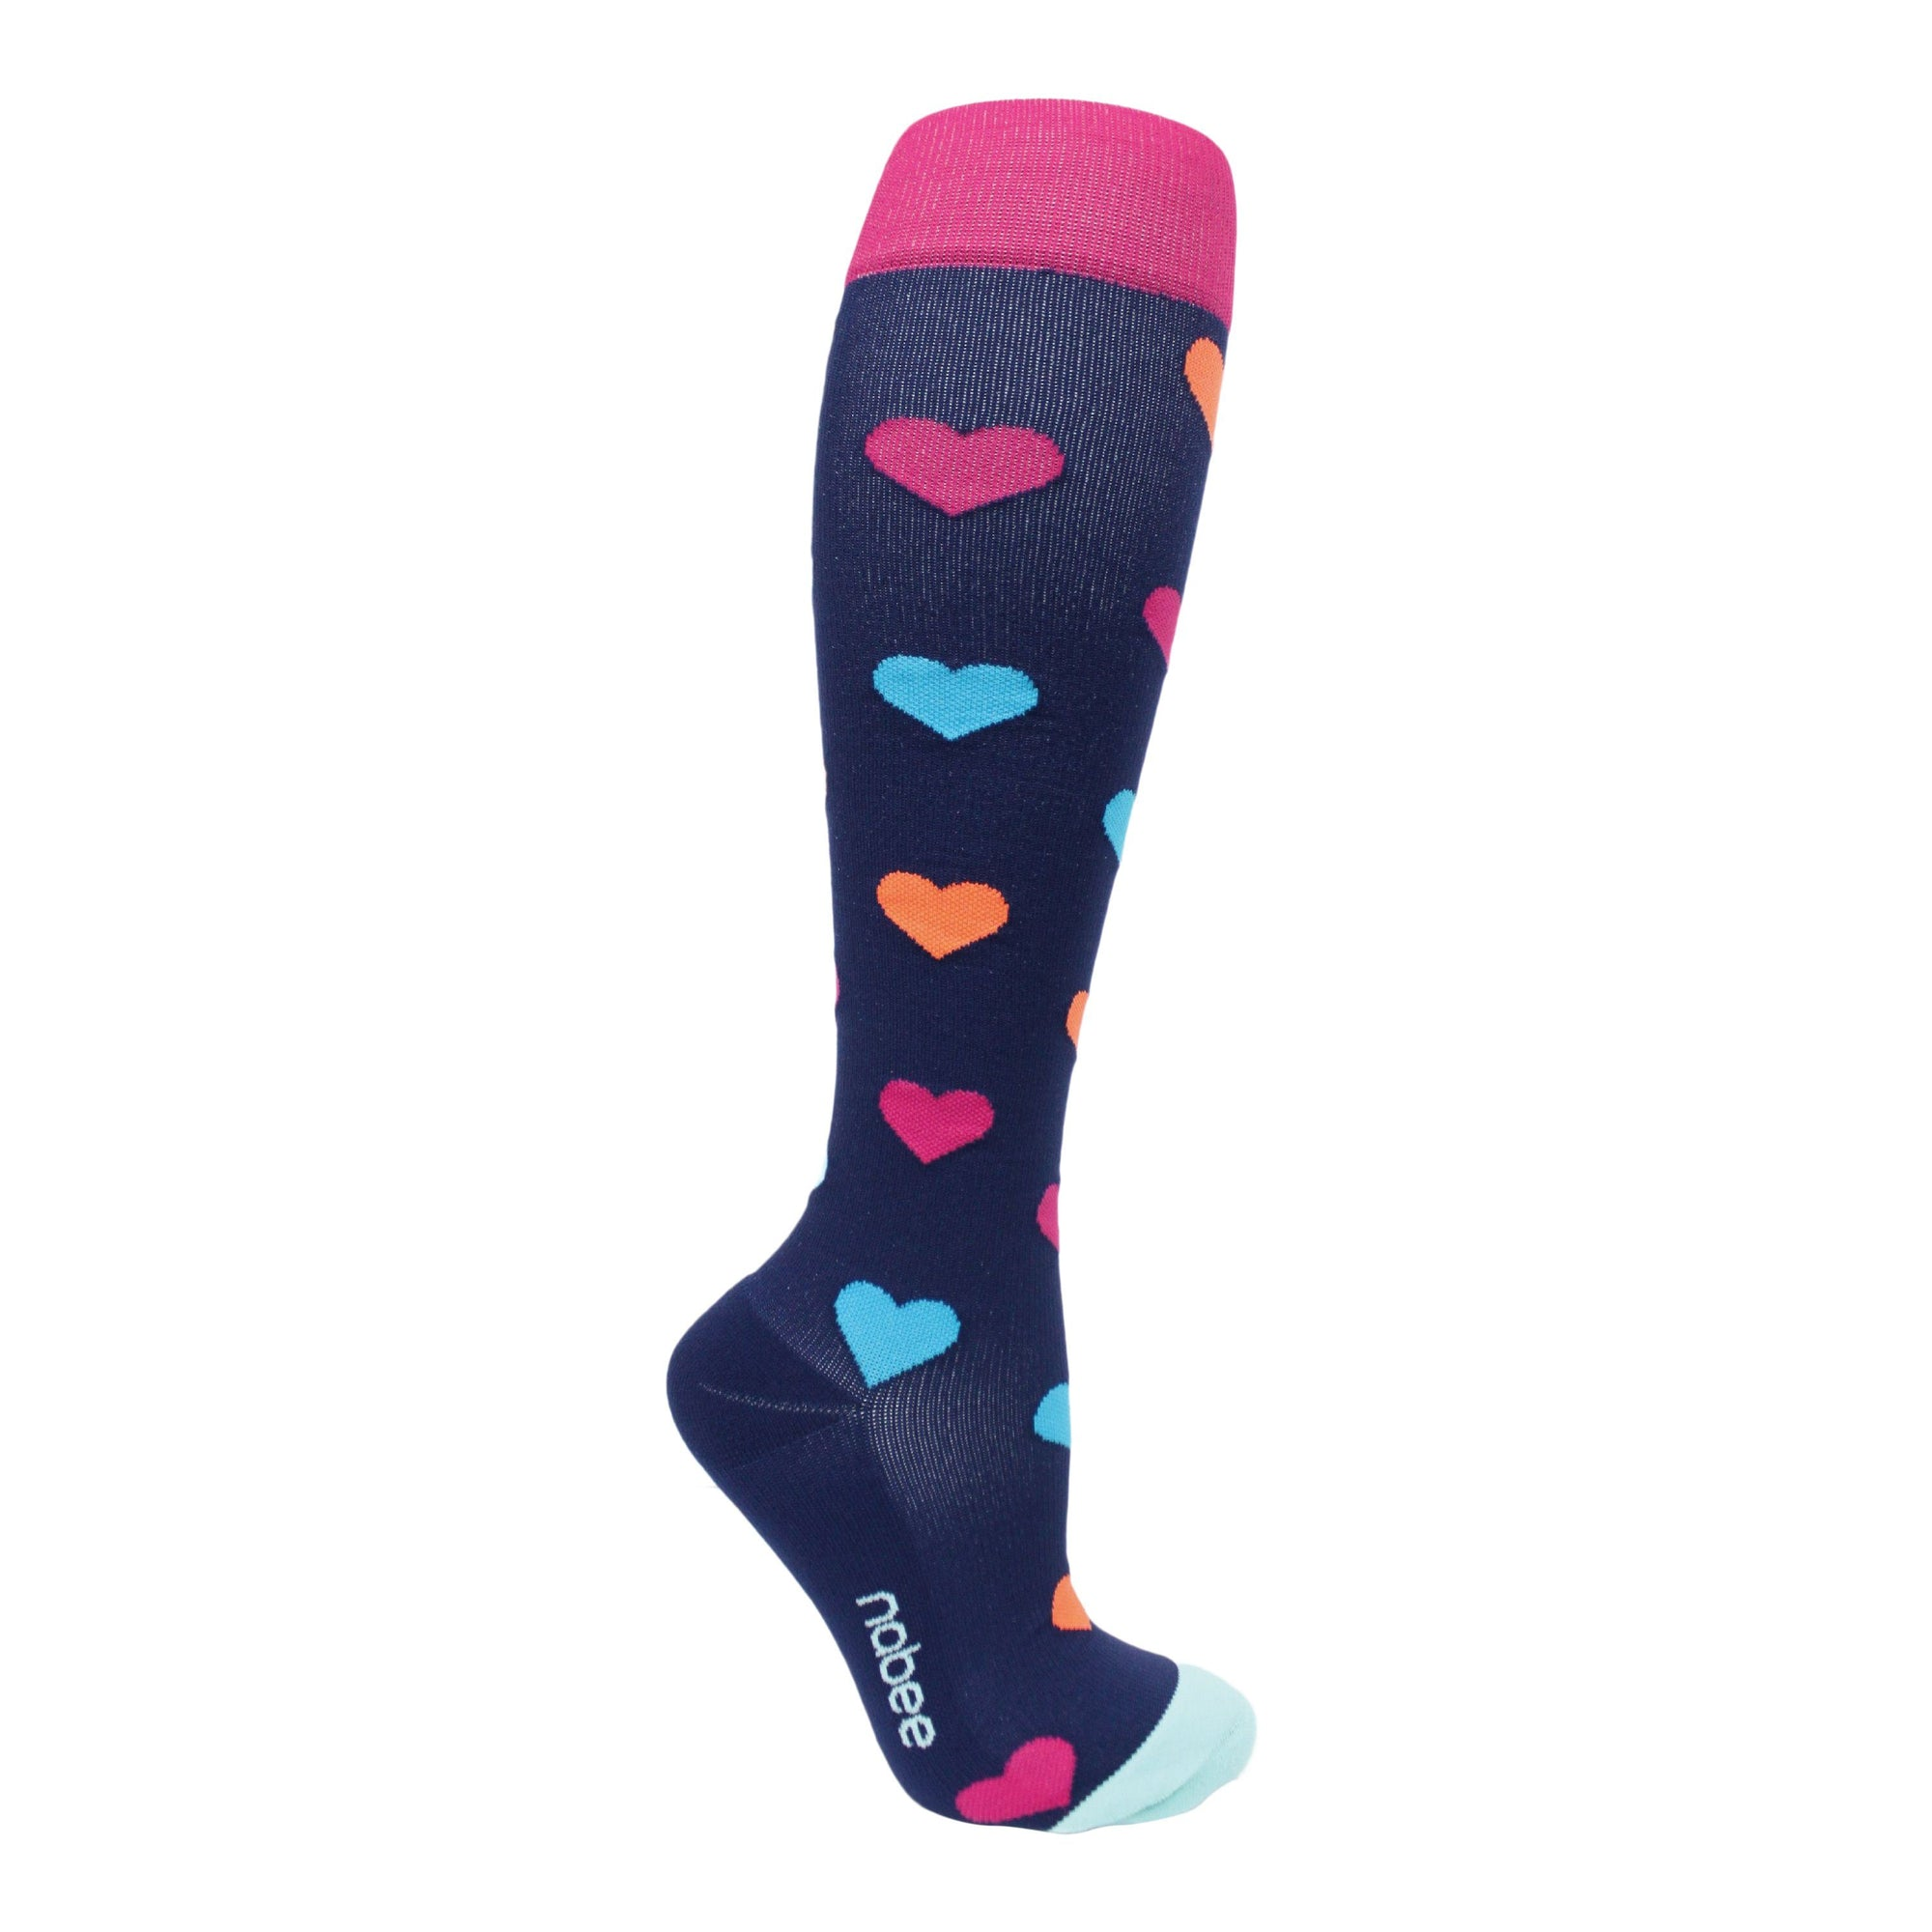 Hearts - (20-30mmHg) - Nabee Socks